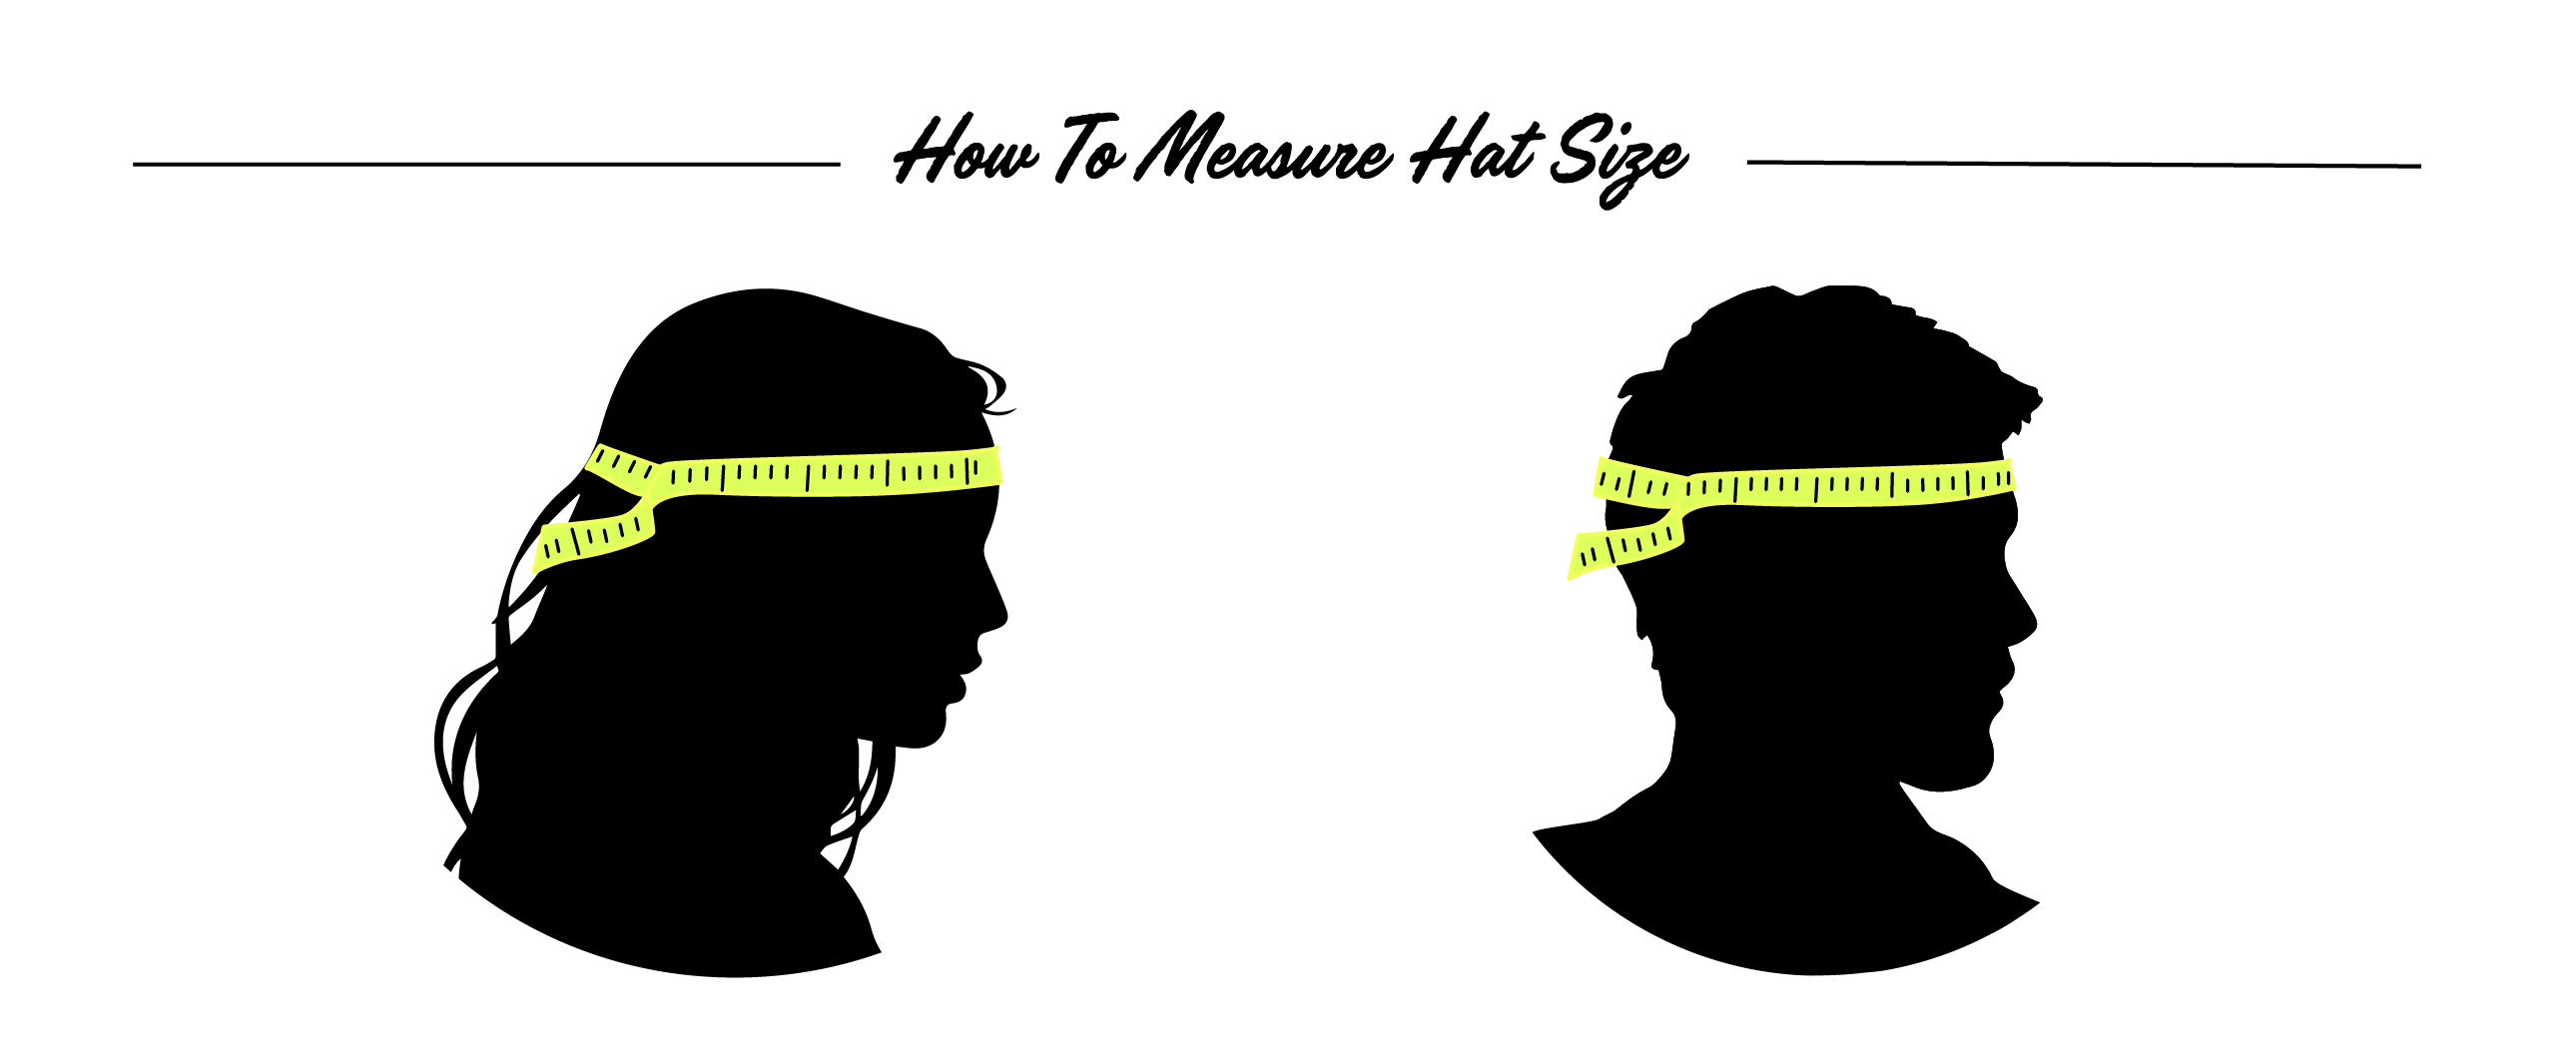 How to measure hat size